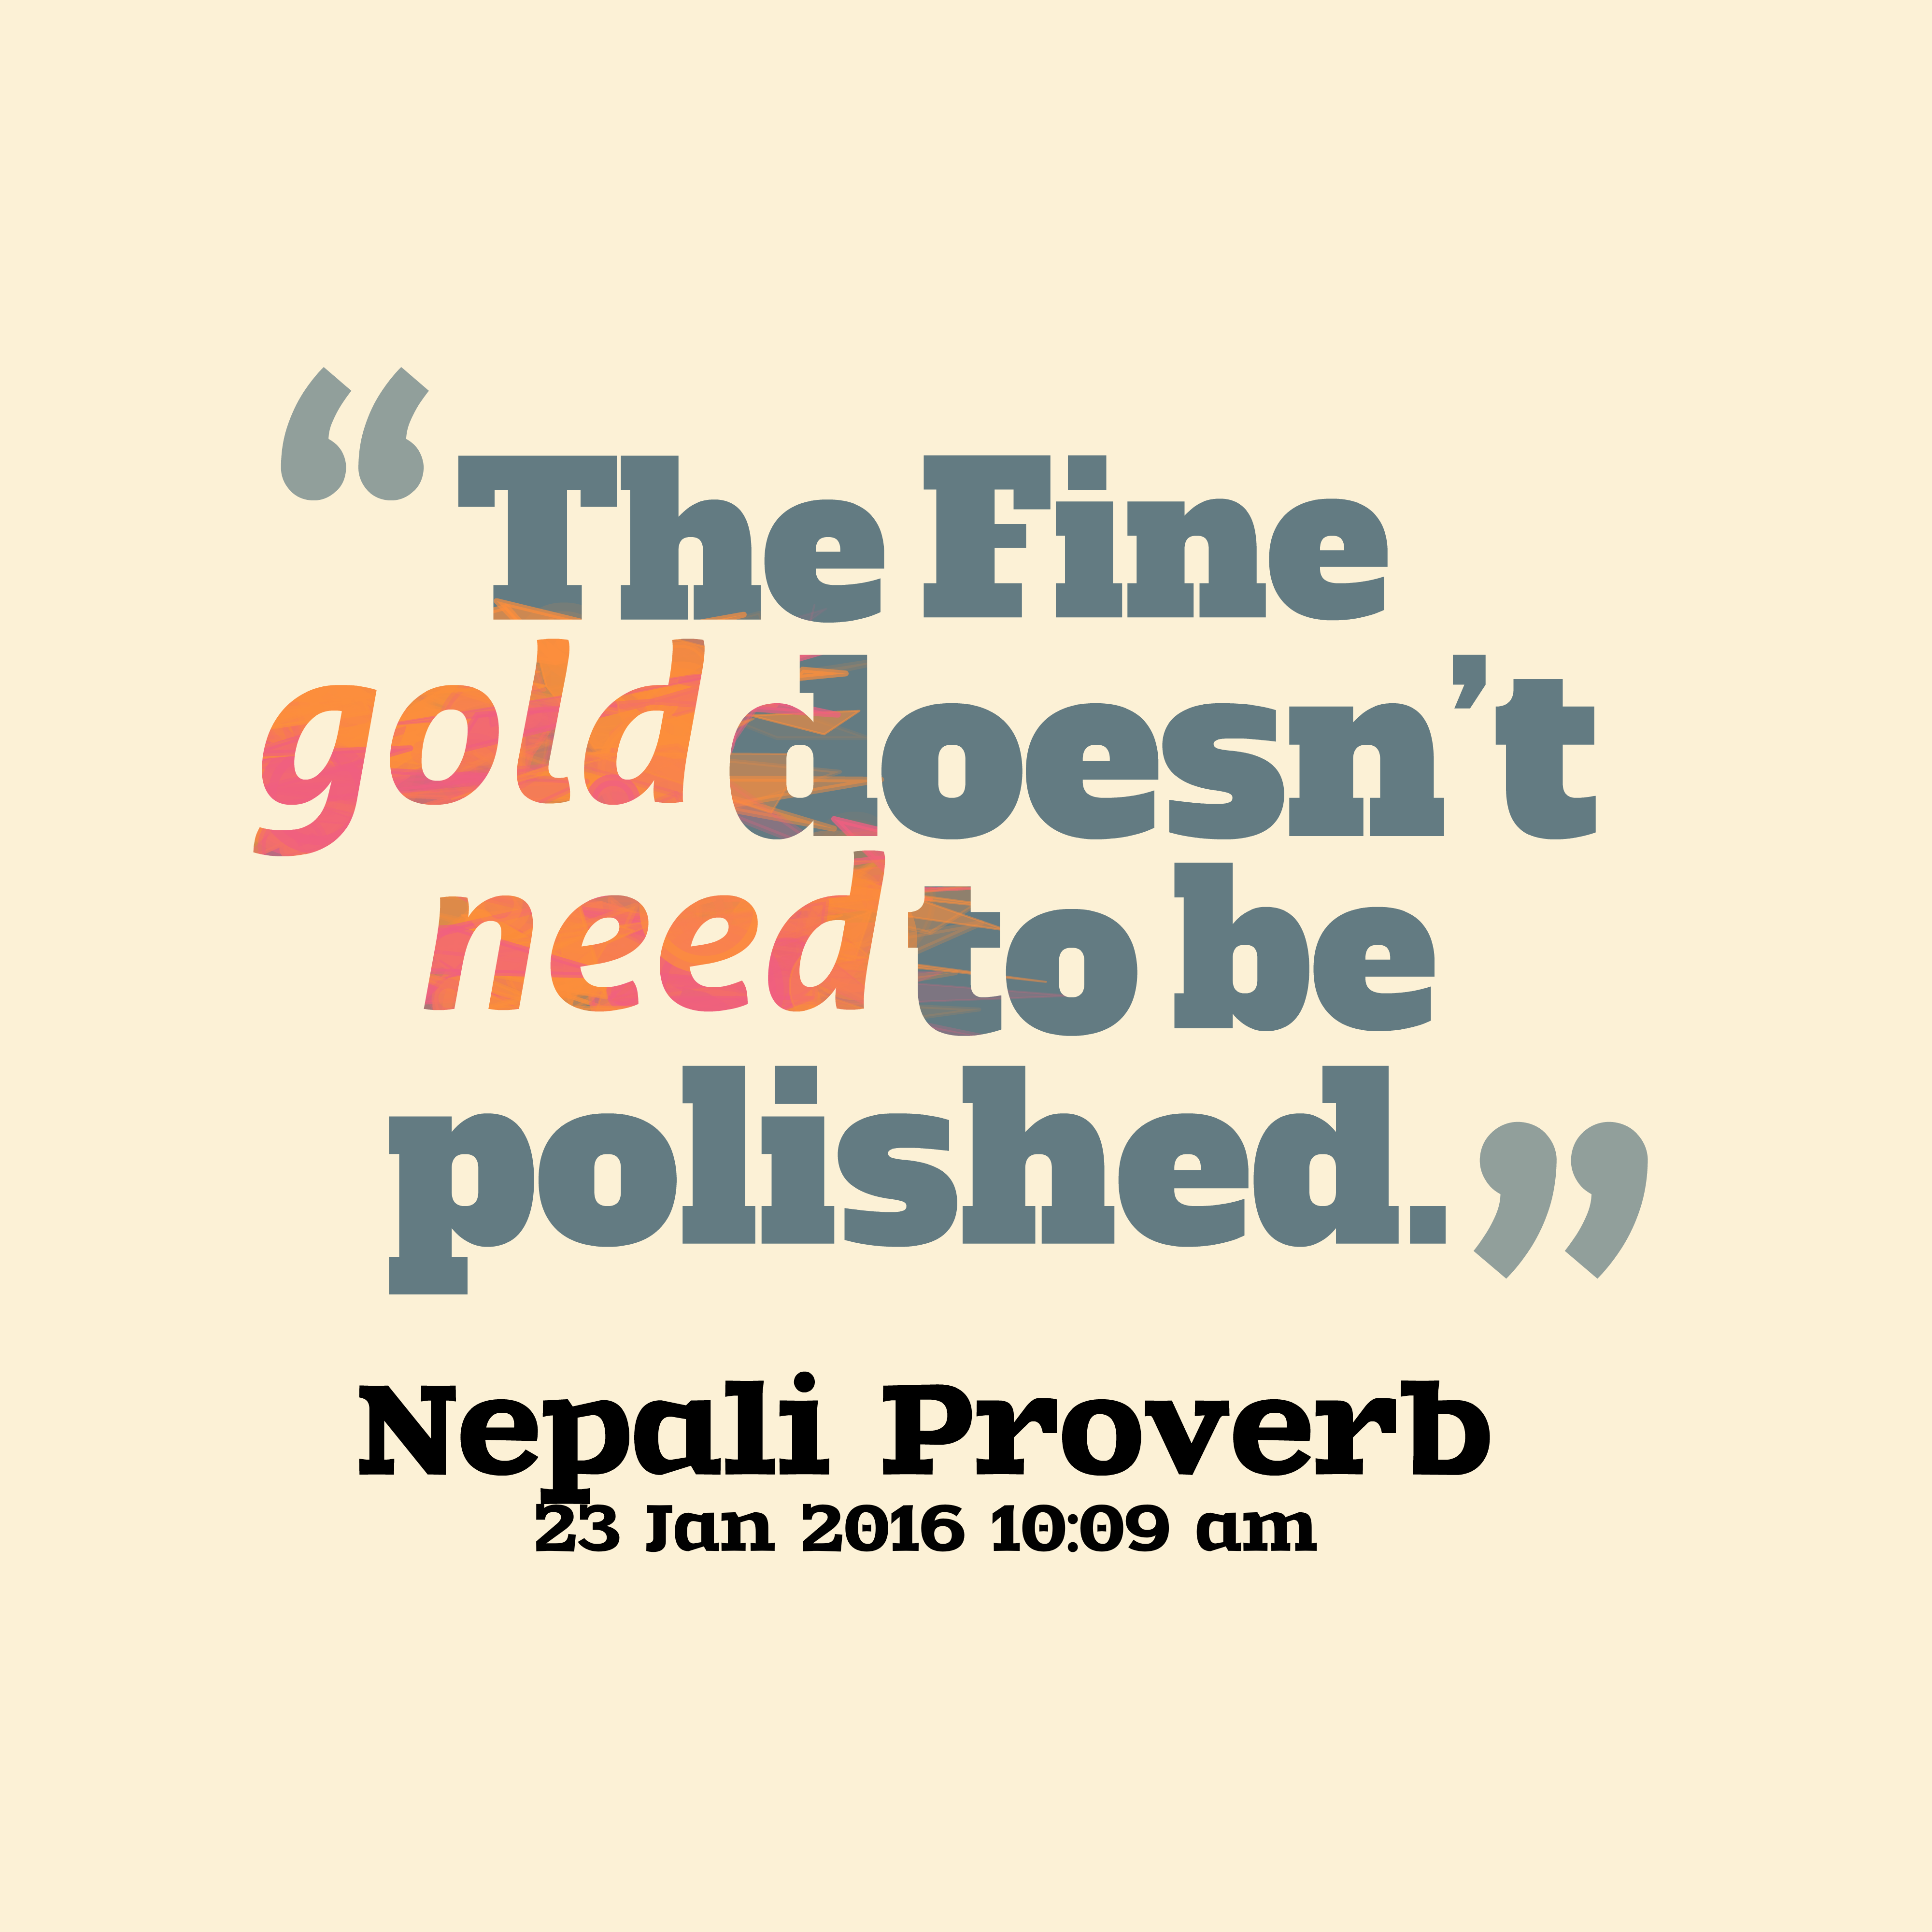 Nepali proverb about quality